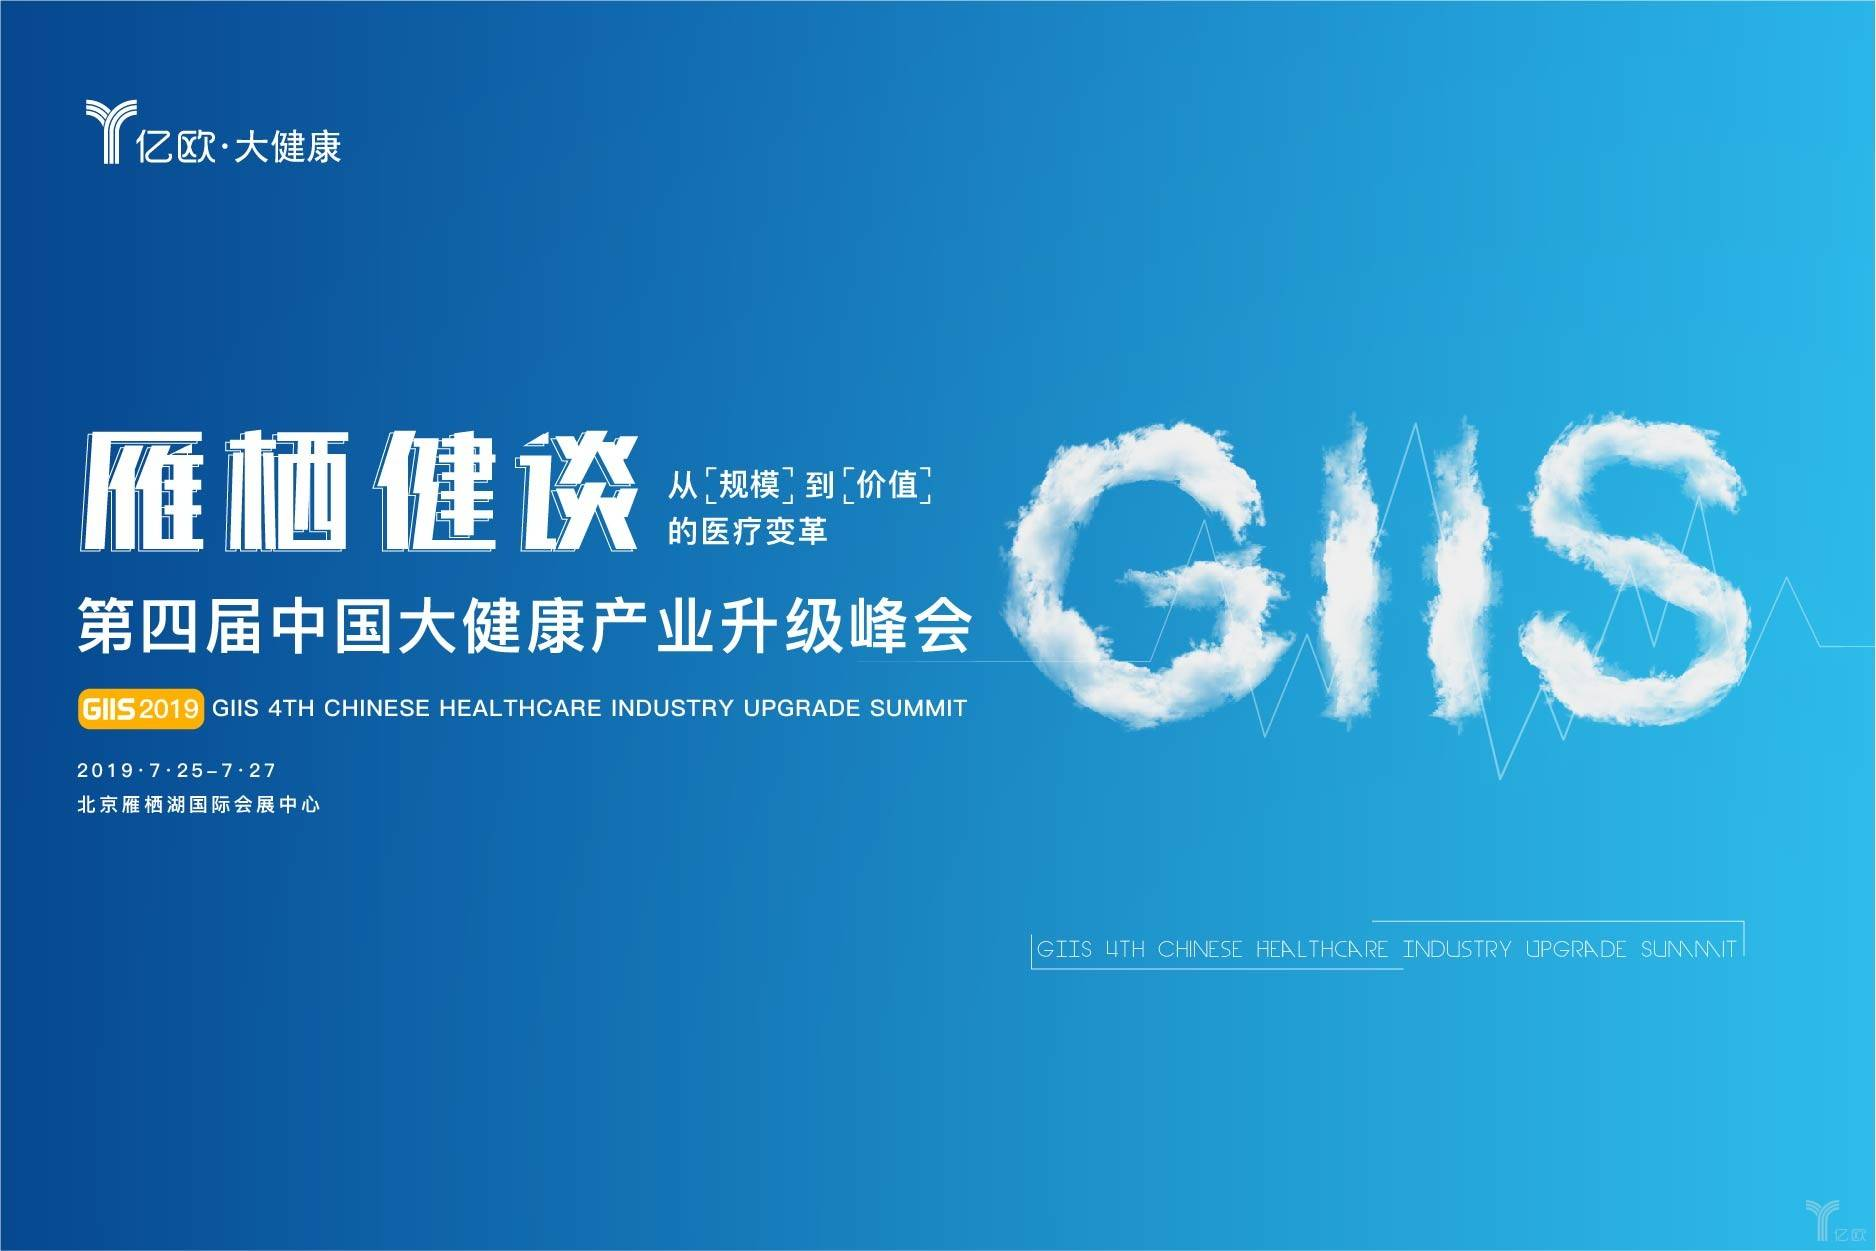 ?,斞劭评钚ゆ么_認參加GIIS 4th CHIU Summit